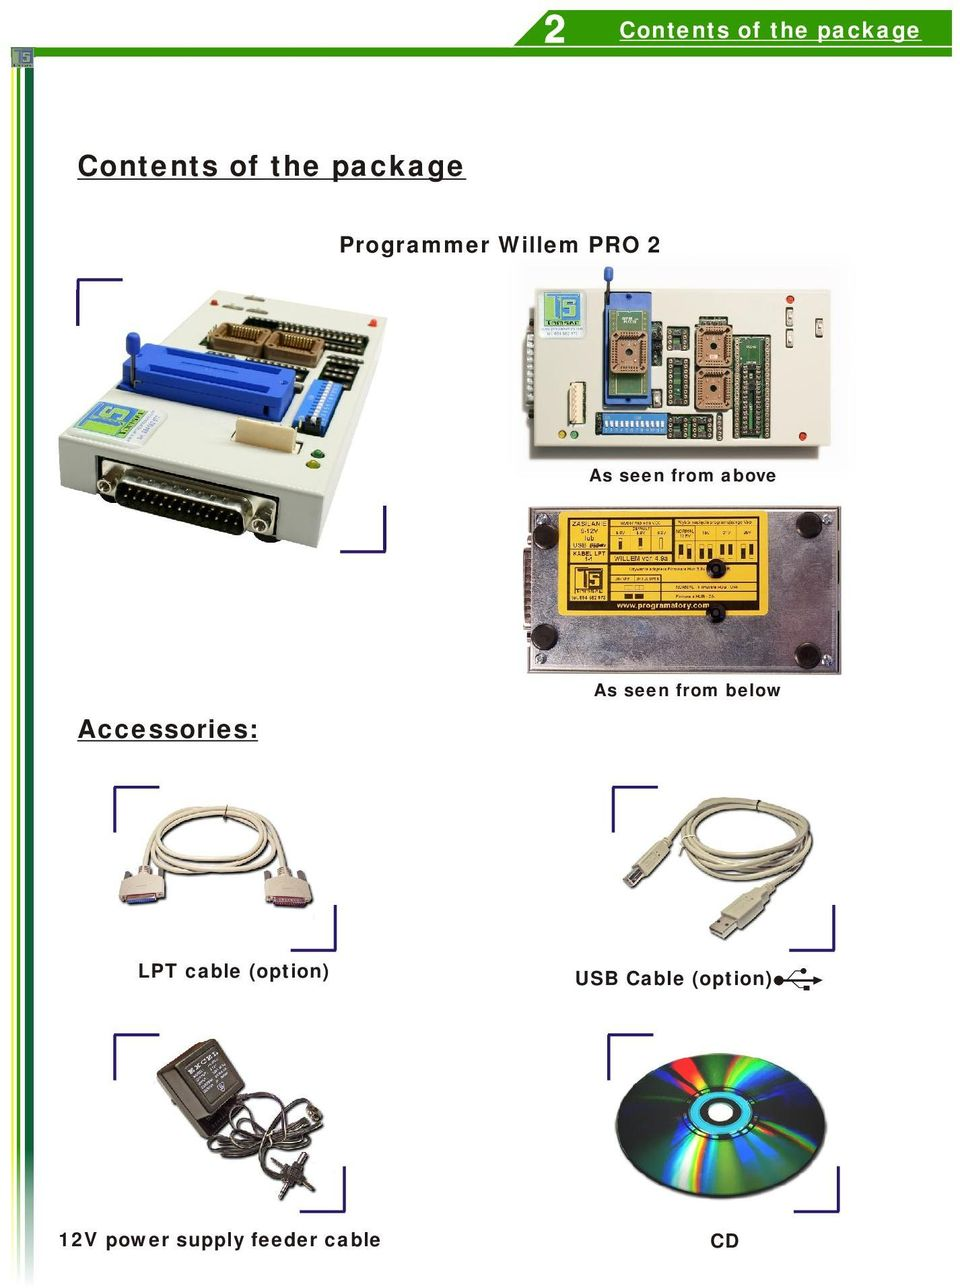 Willem Pro 2 Only Intelligent Programming Pdf Usb 62b Cable Schematic Above Accessories As Seen From Below Lpt